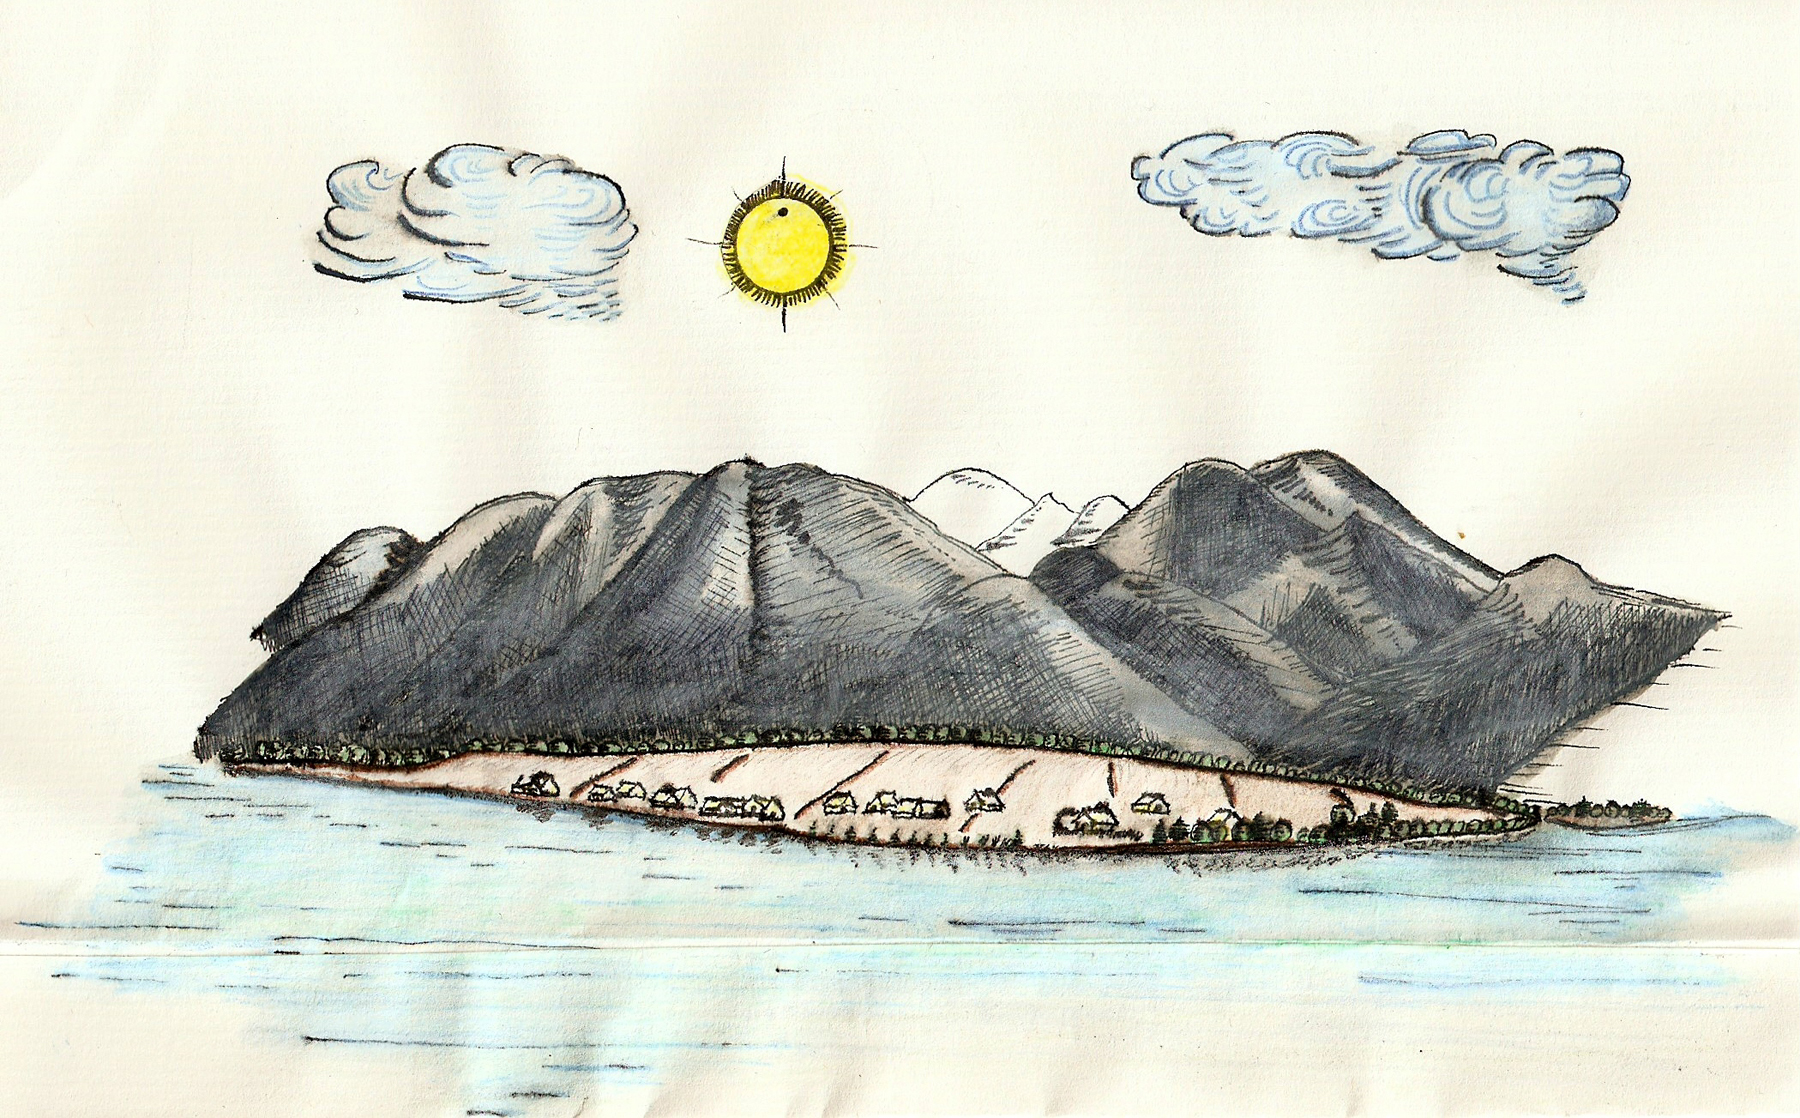 Thomas Wright's 1769 ToV observing station at Île aux Coudres, Lower Canada